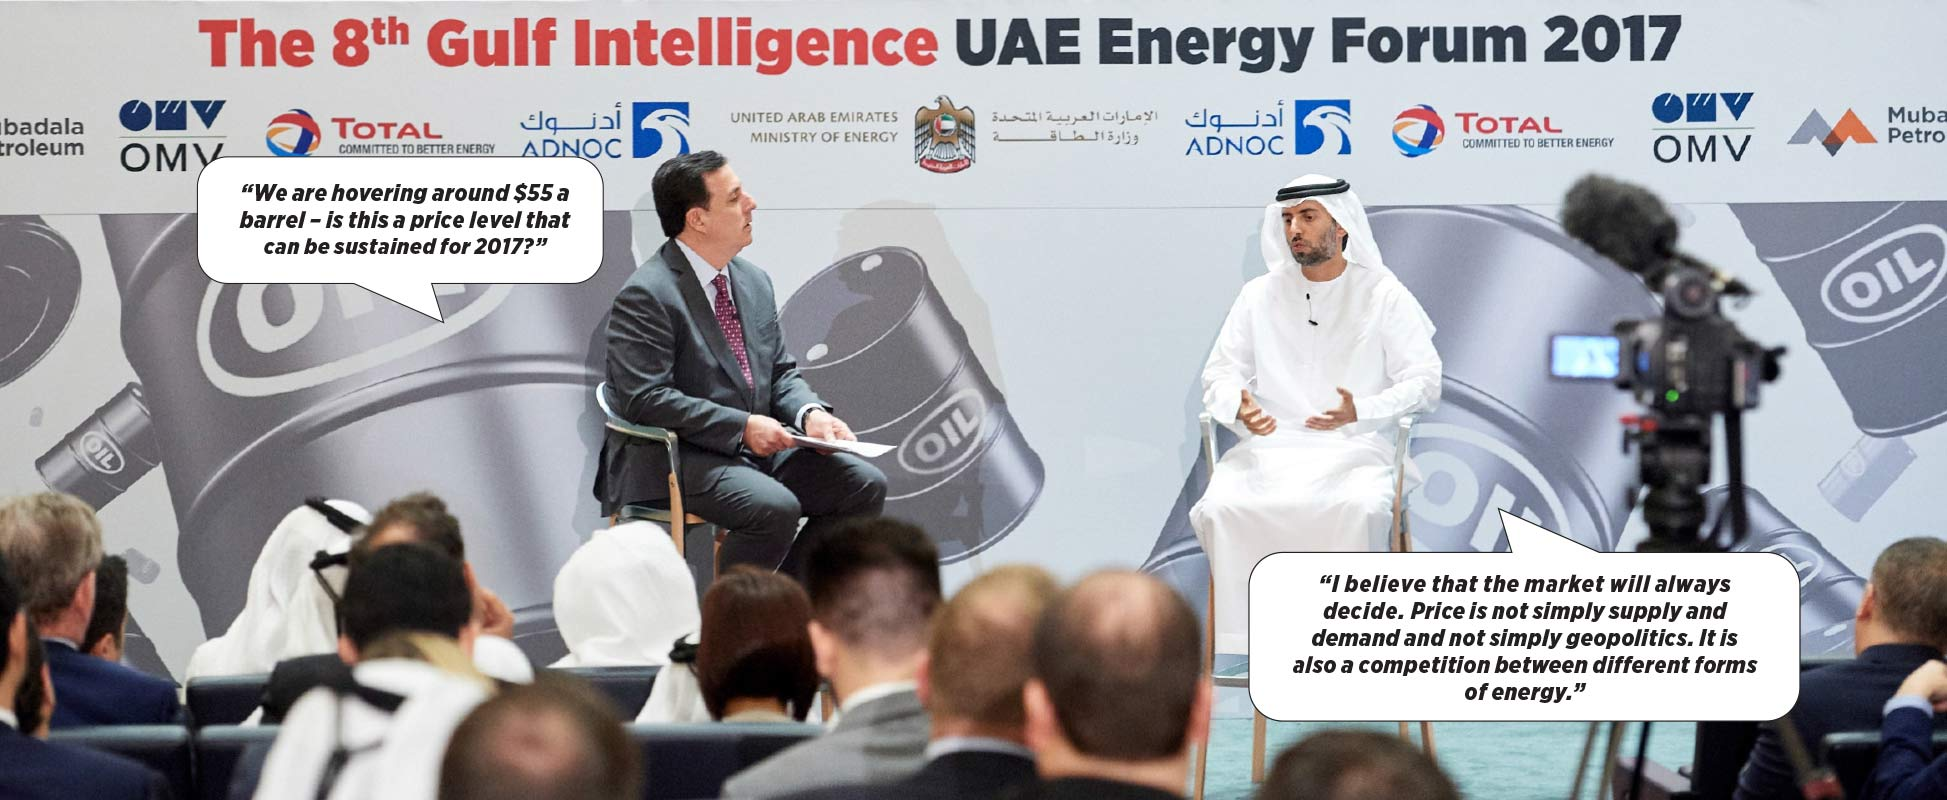 Exclusive Interview: H.E. Suhail Al-Mazrouei, Minister of Energy, UAE